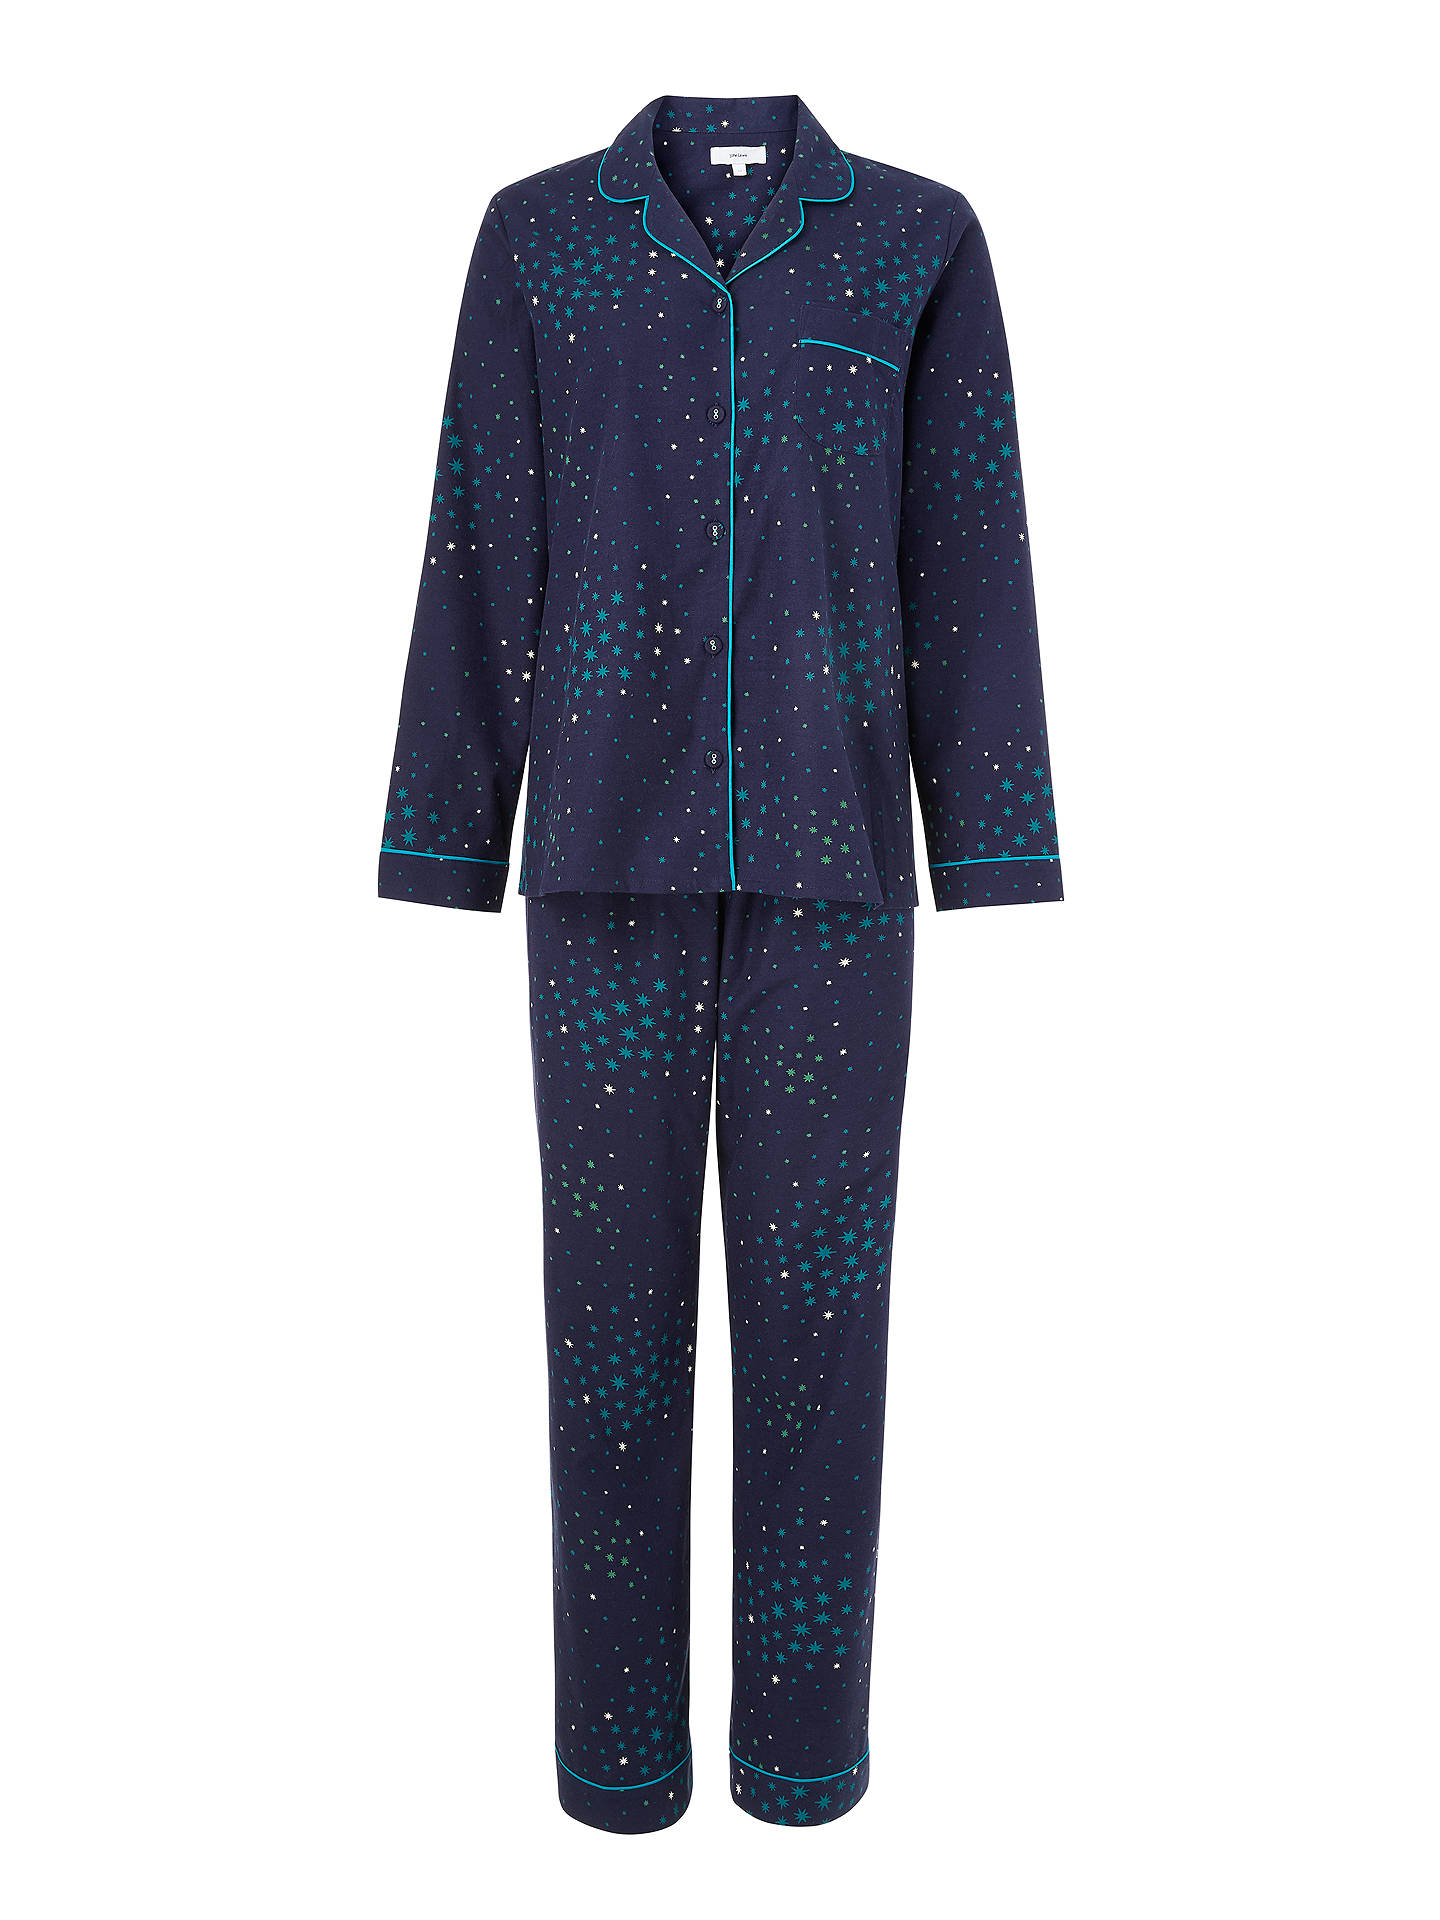 BuyJohn Lewis & Partners Gala Star Print Cotton Pyjama Set, Navy, 8 Online at johnlewis.com